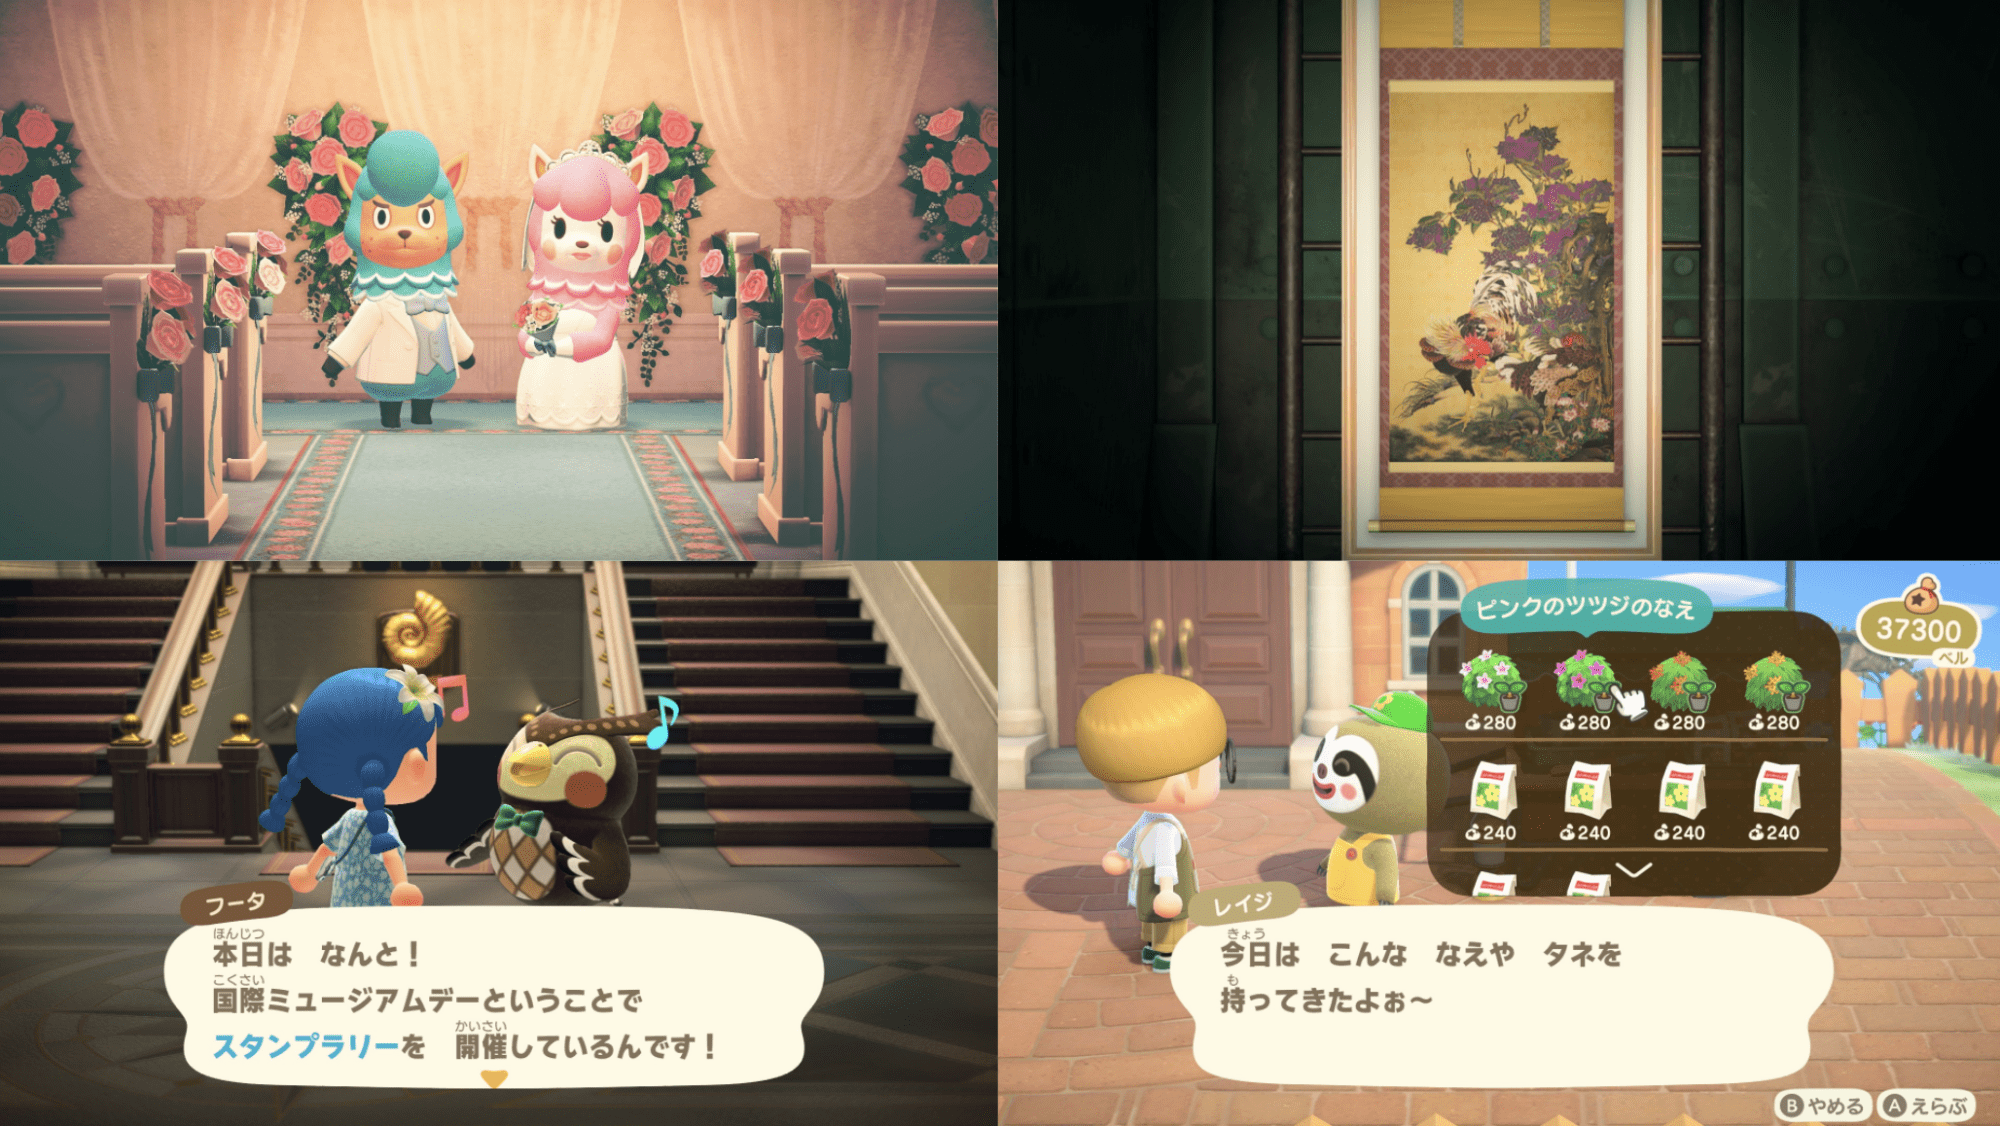 A Free Update to Animal Crossing: New Horizons on April 23 ...